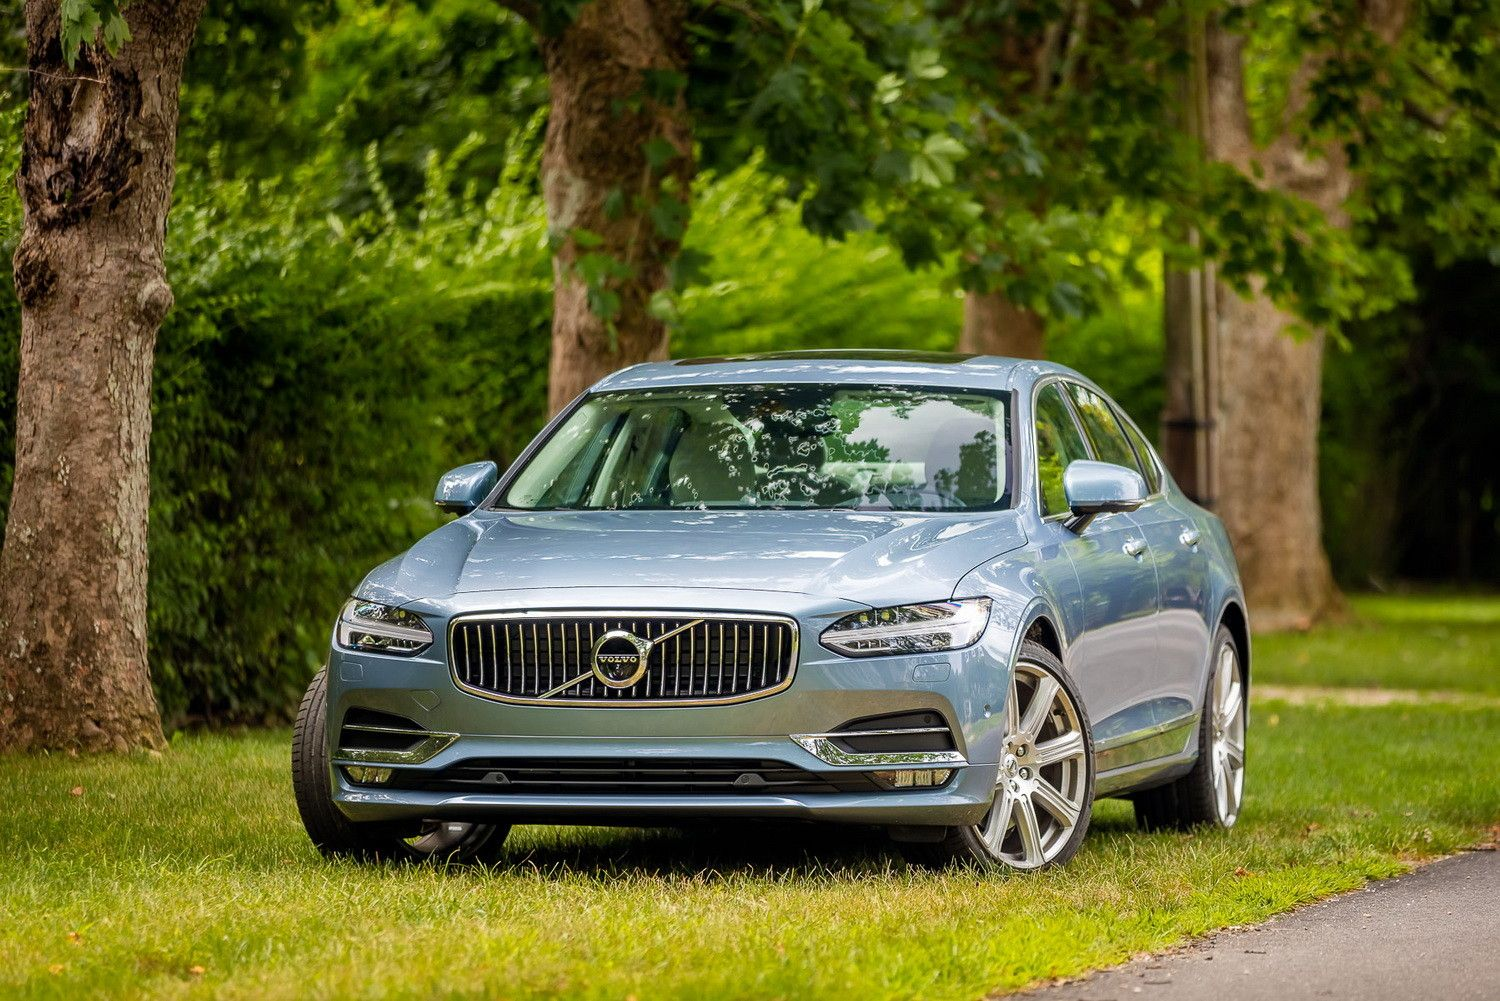 Safe, luxurious, and packed with tech, Volvo's S90 is a